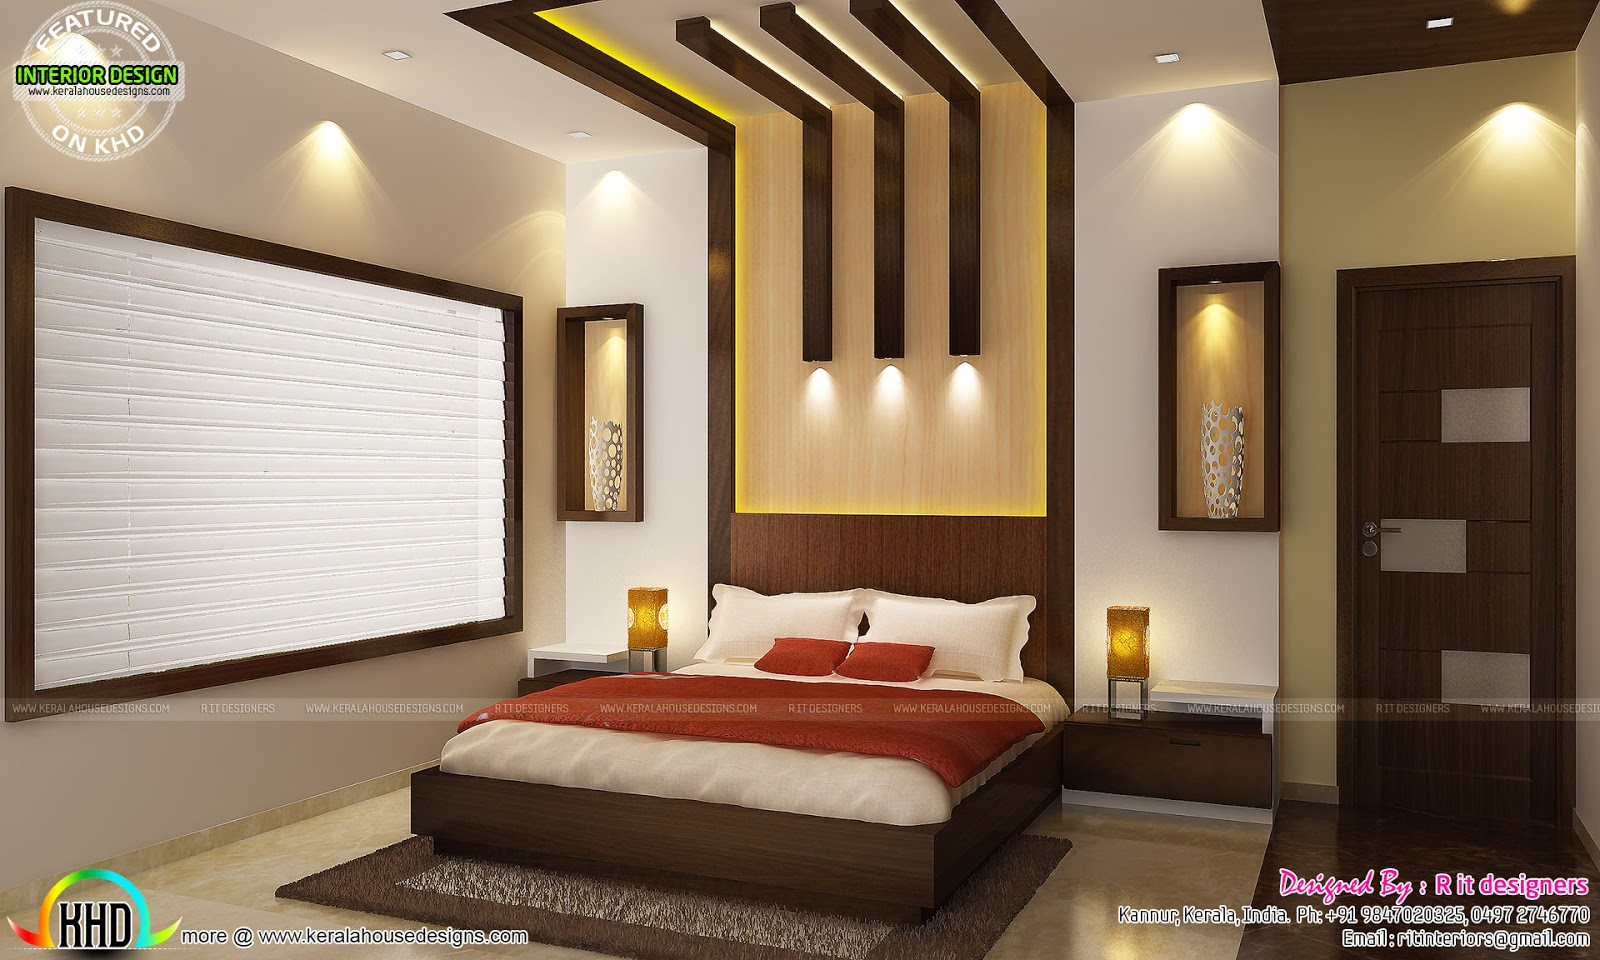 Kitchen living bedroom dining interior decor kerala for Interior design pictures